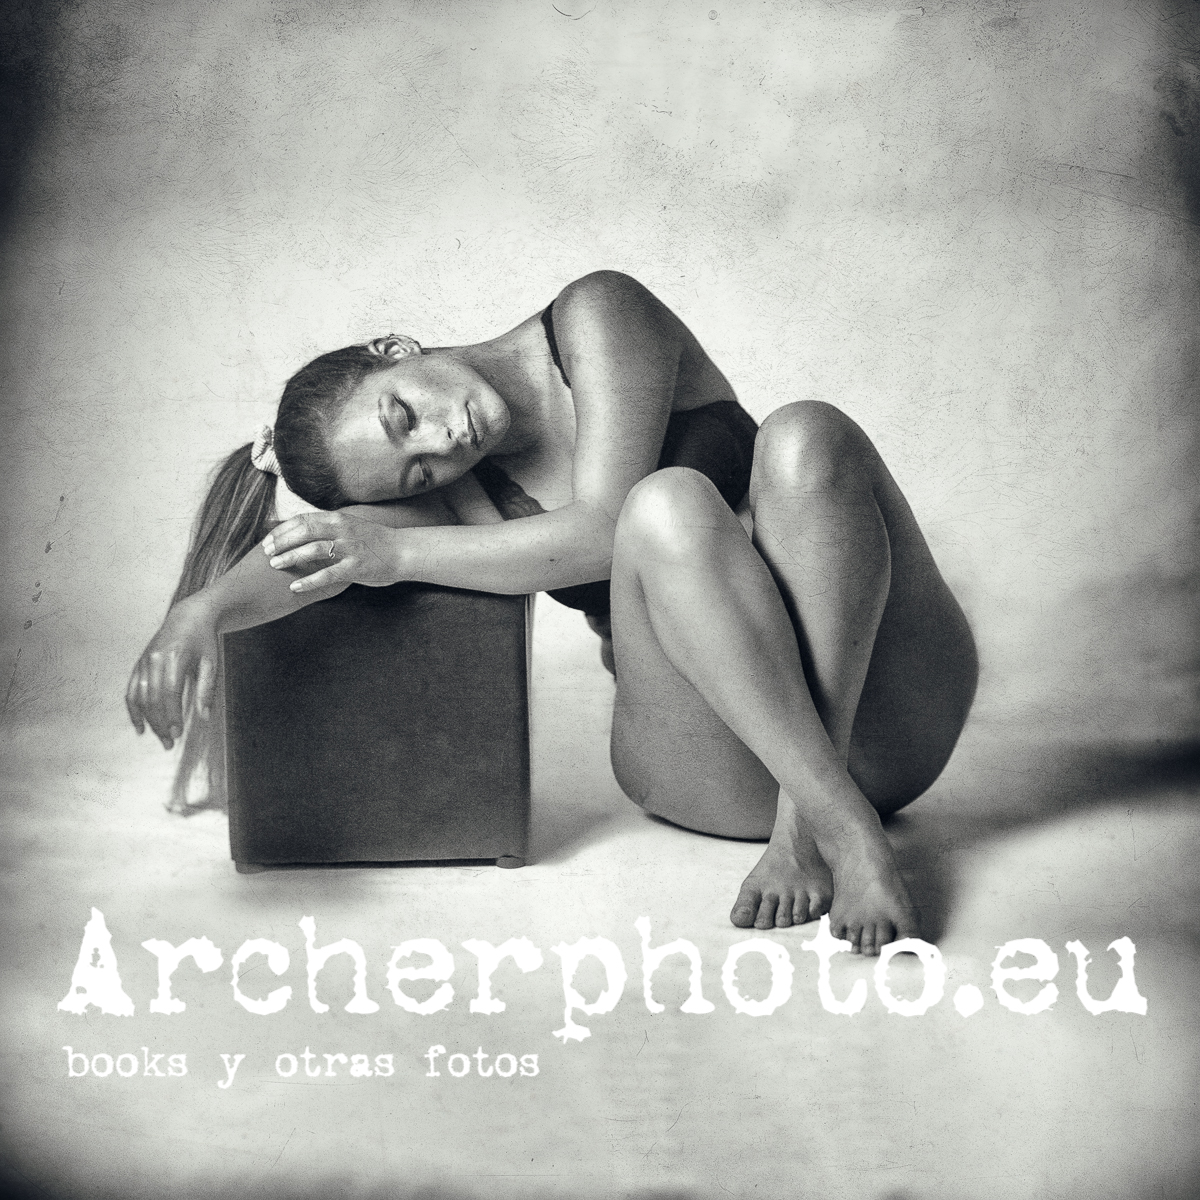 Patricia, Summer 2020 (5) by Archerphoto, professional photographer in Spain